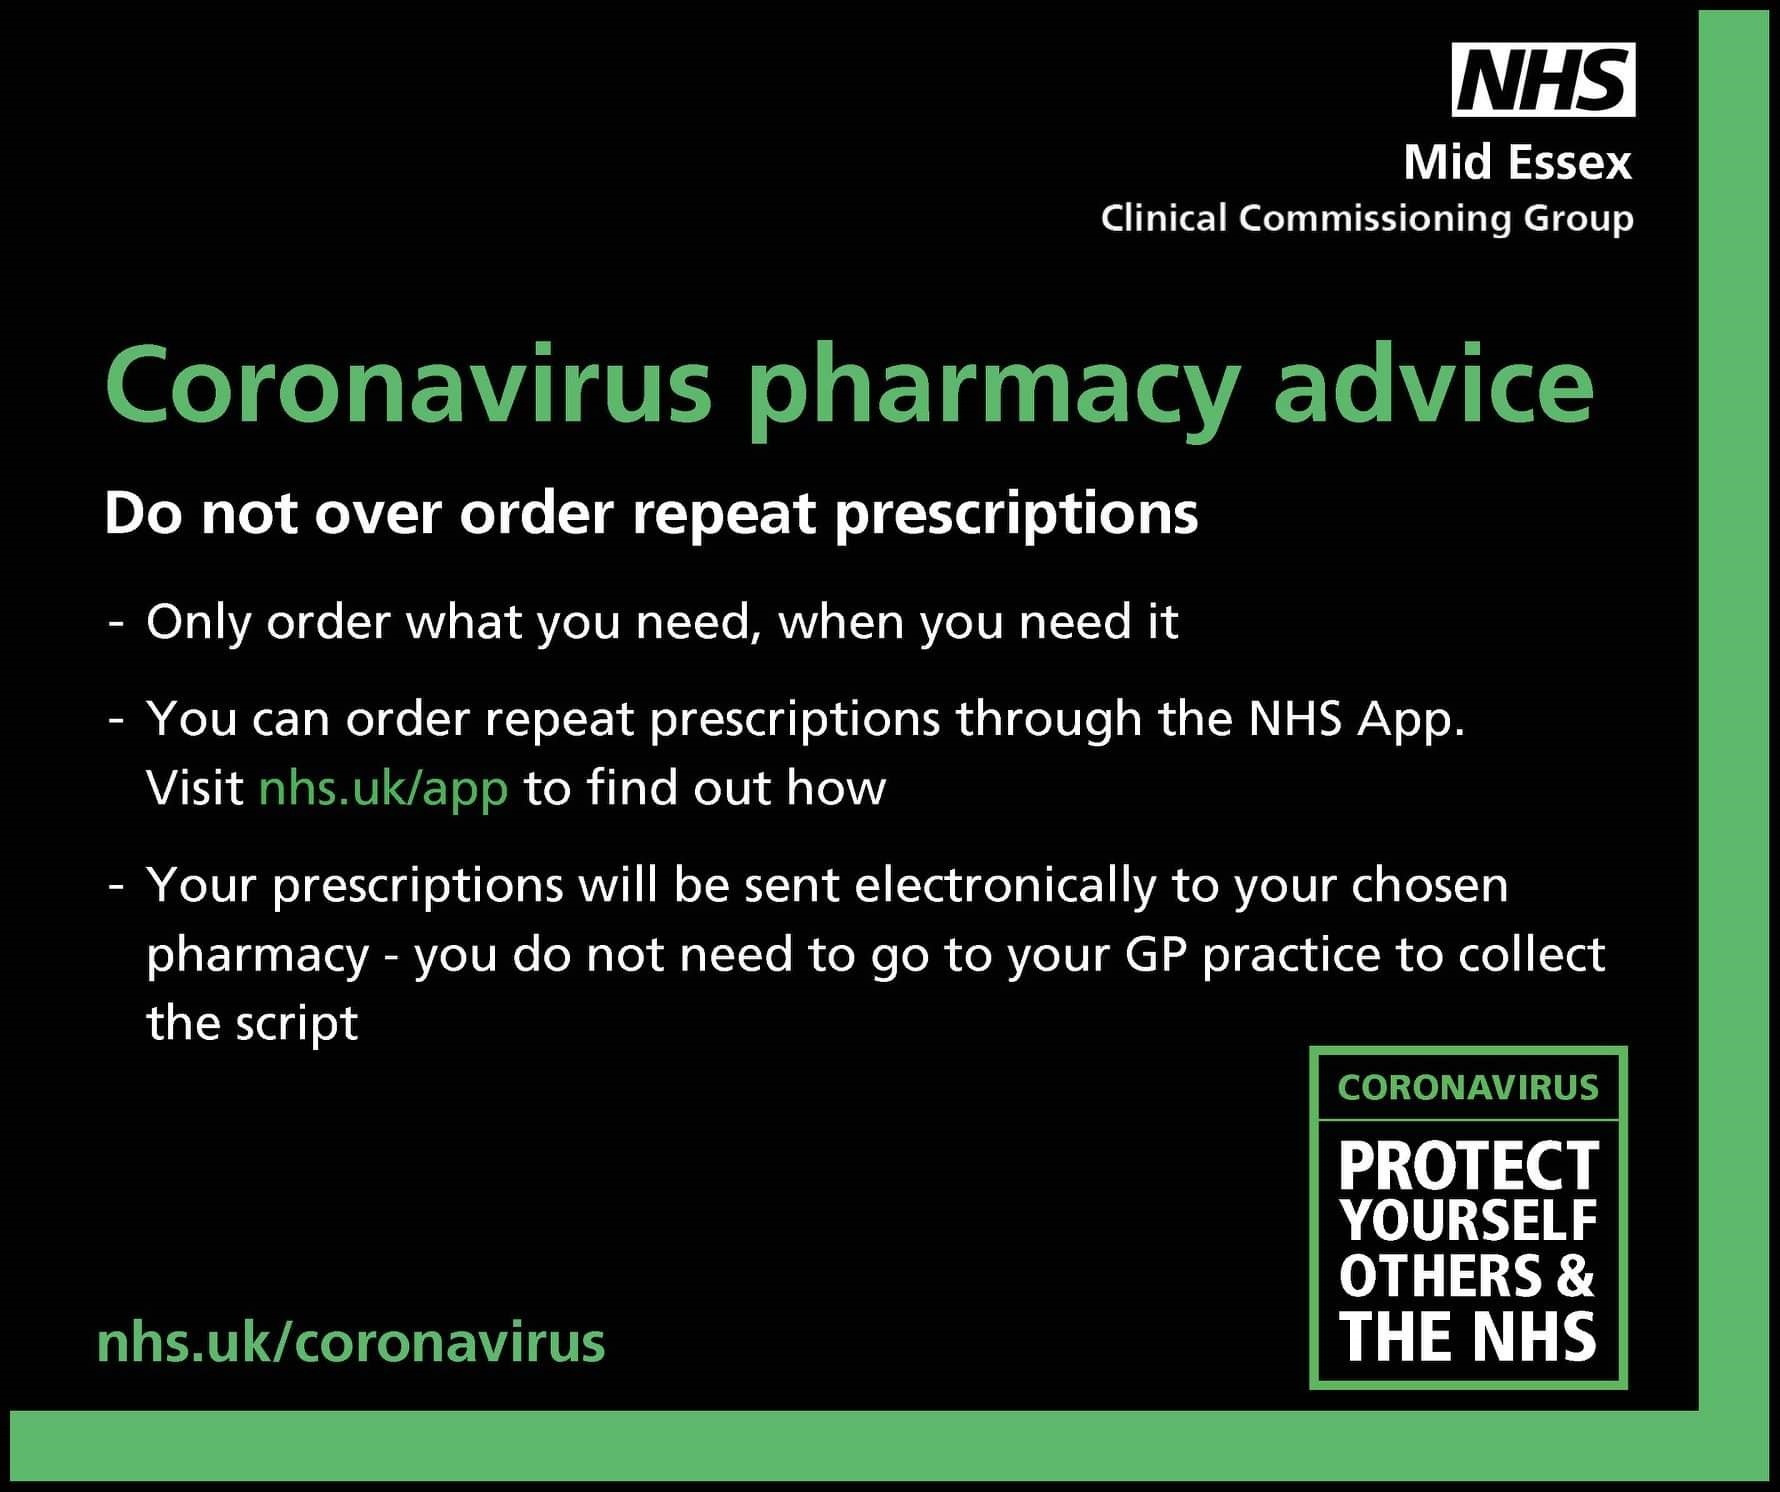 MID ESSEX CCG PHARMACY ADVICE